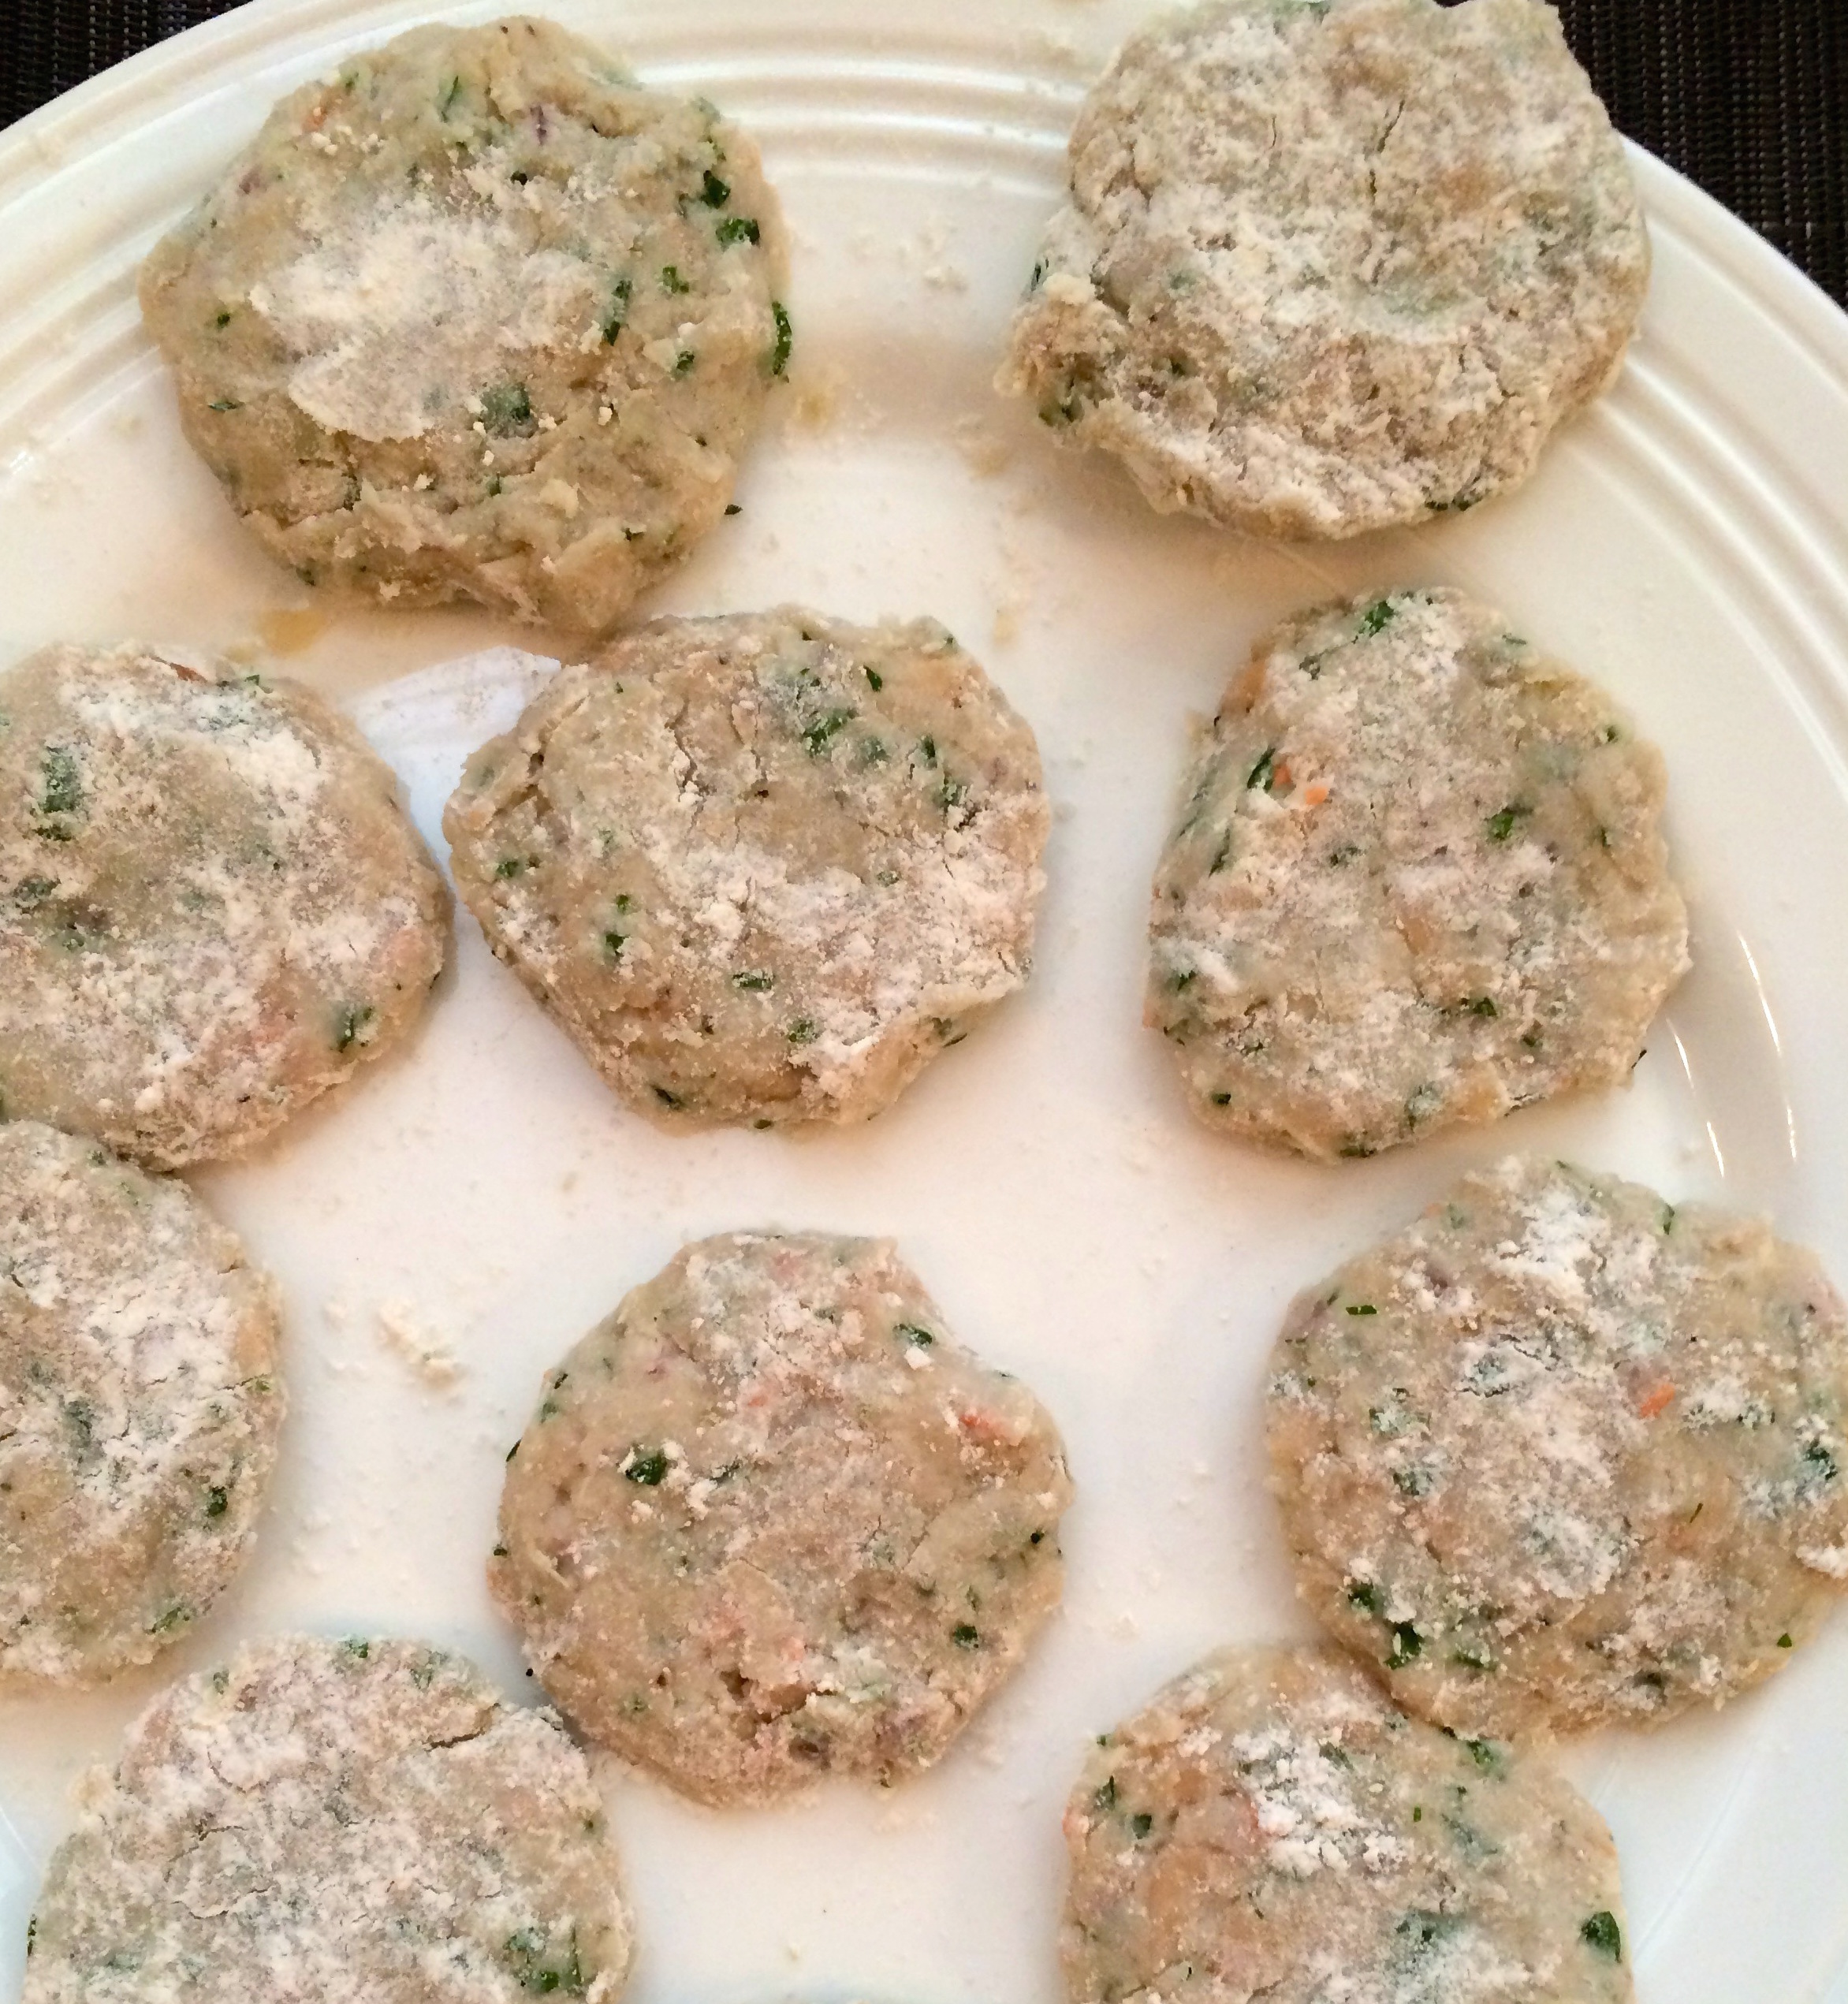 Uncooked fritters